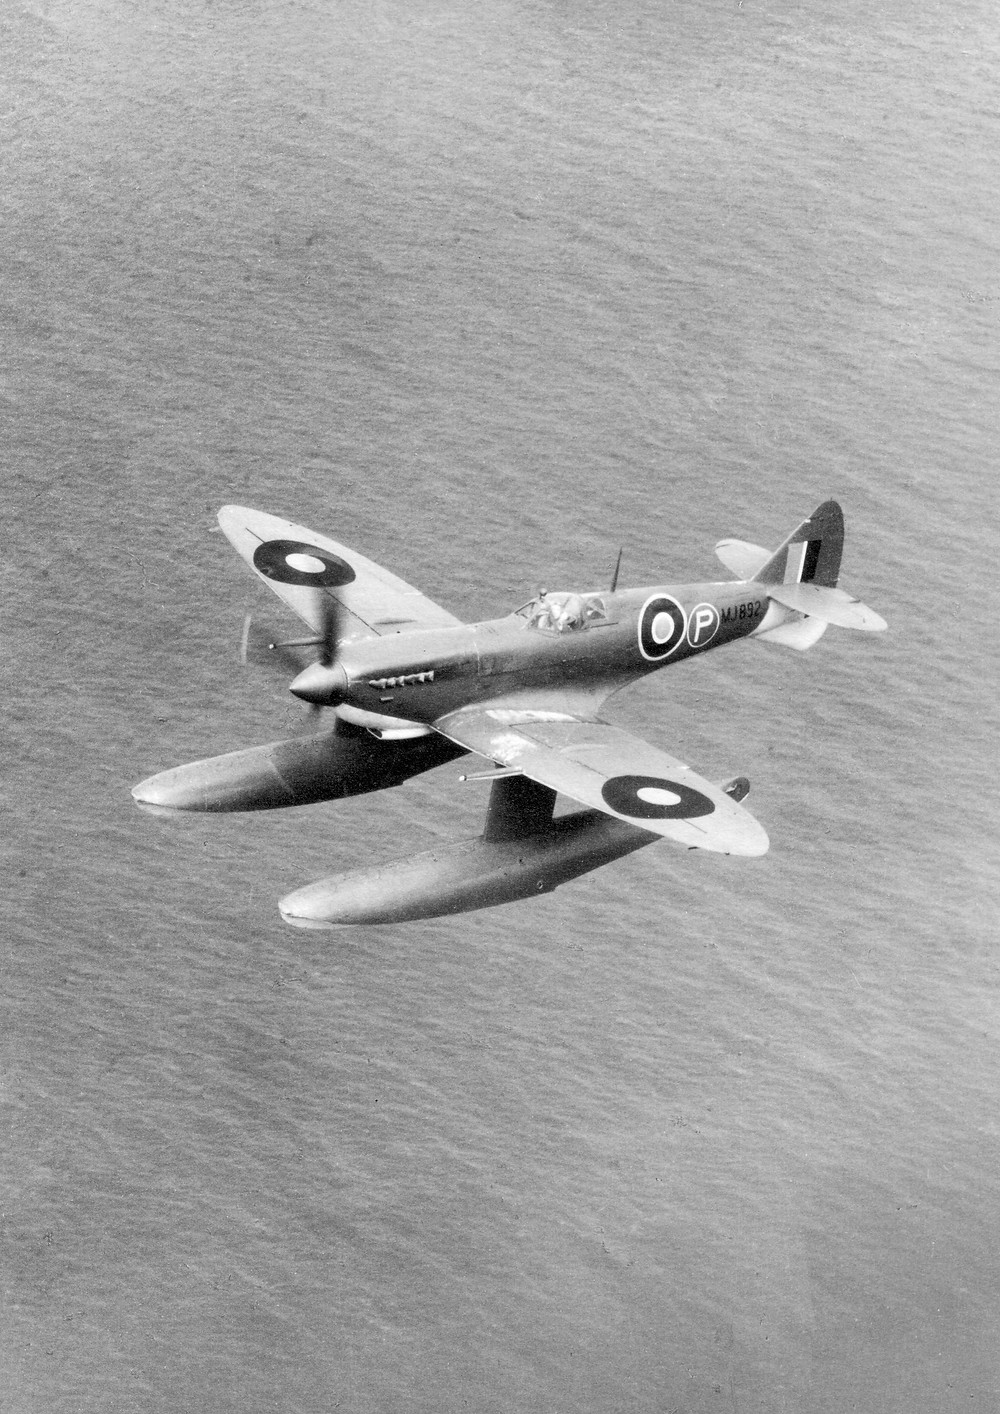 Spitfire IX on floats